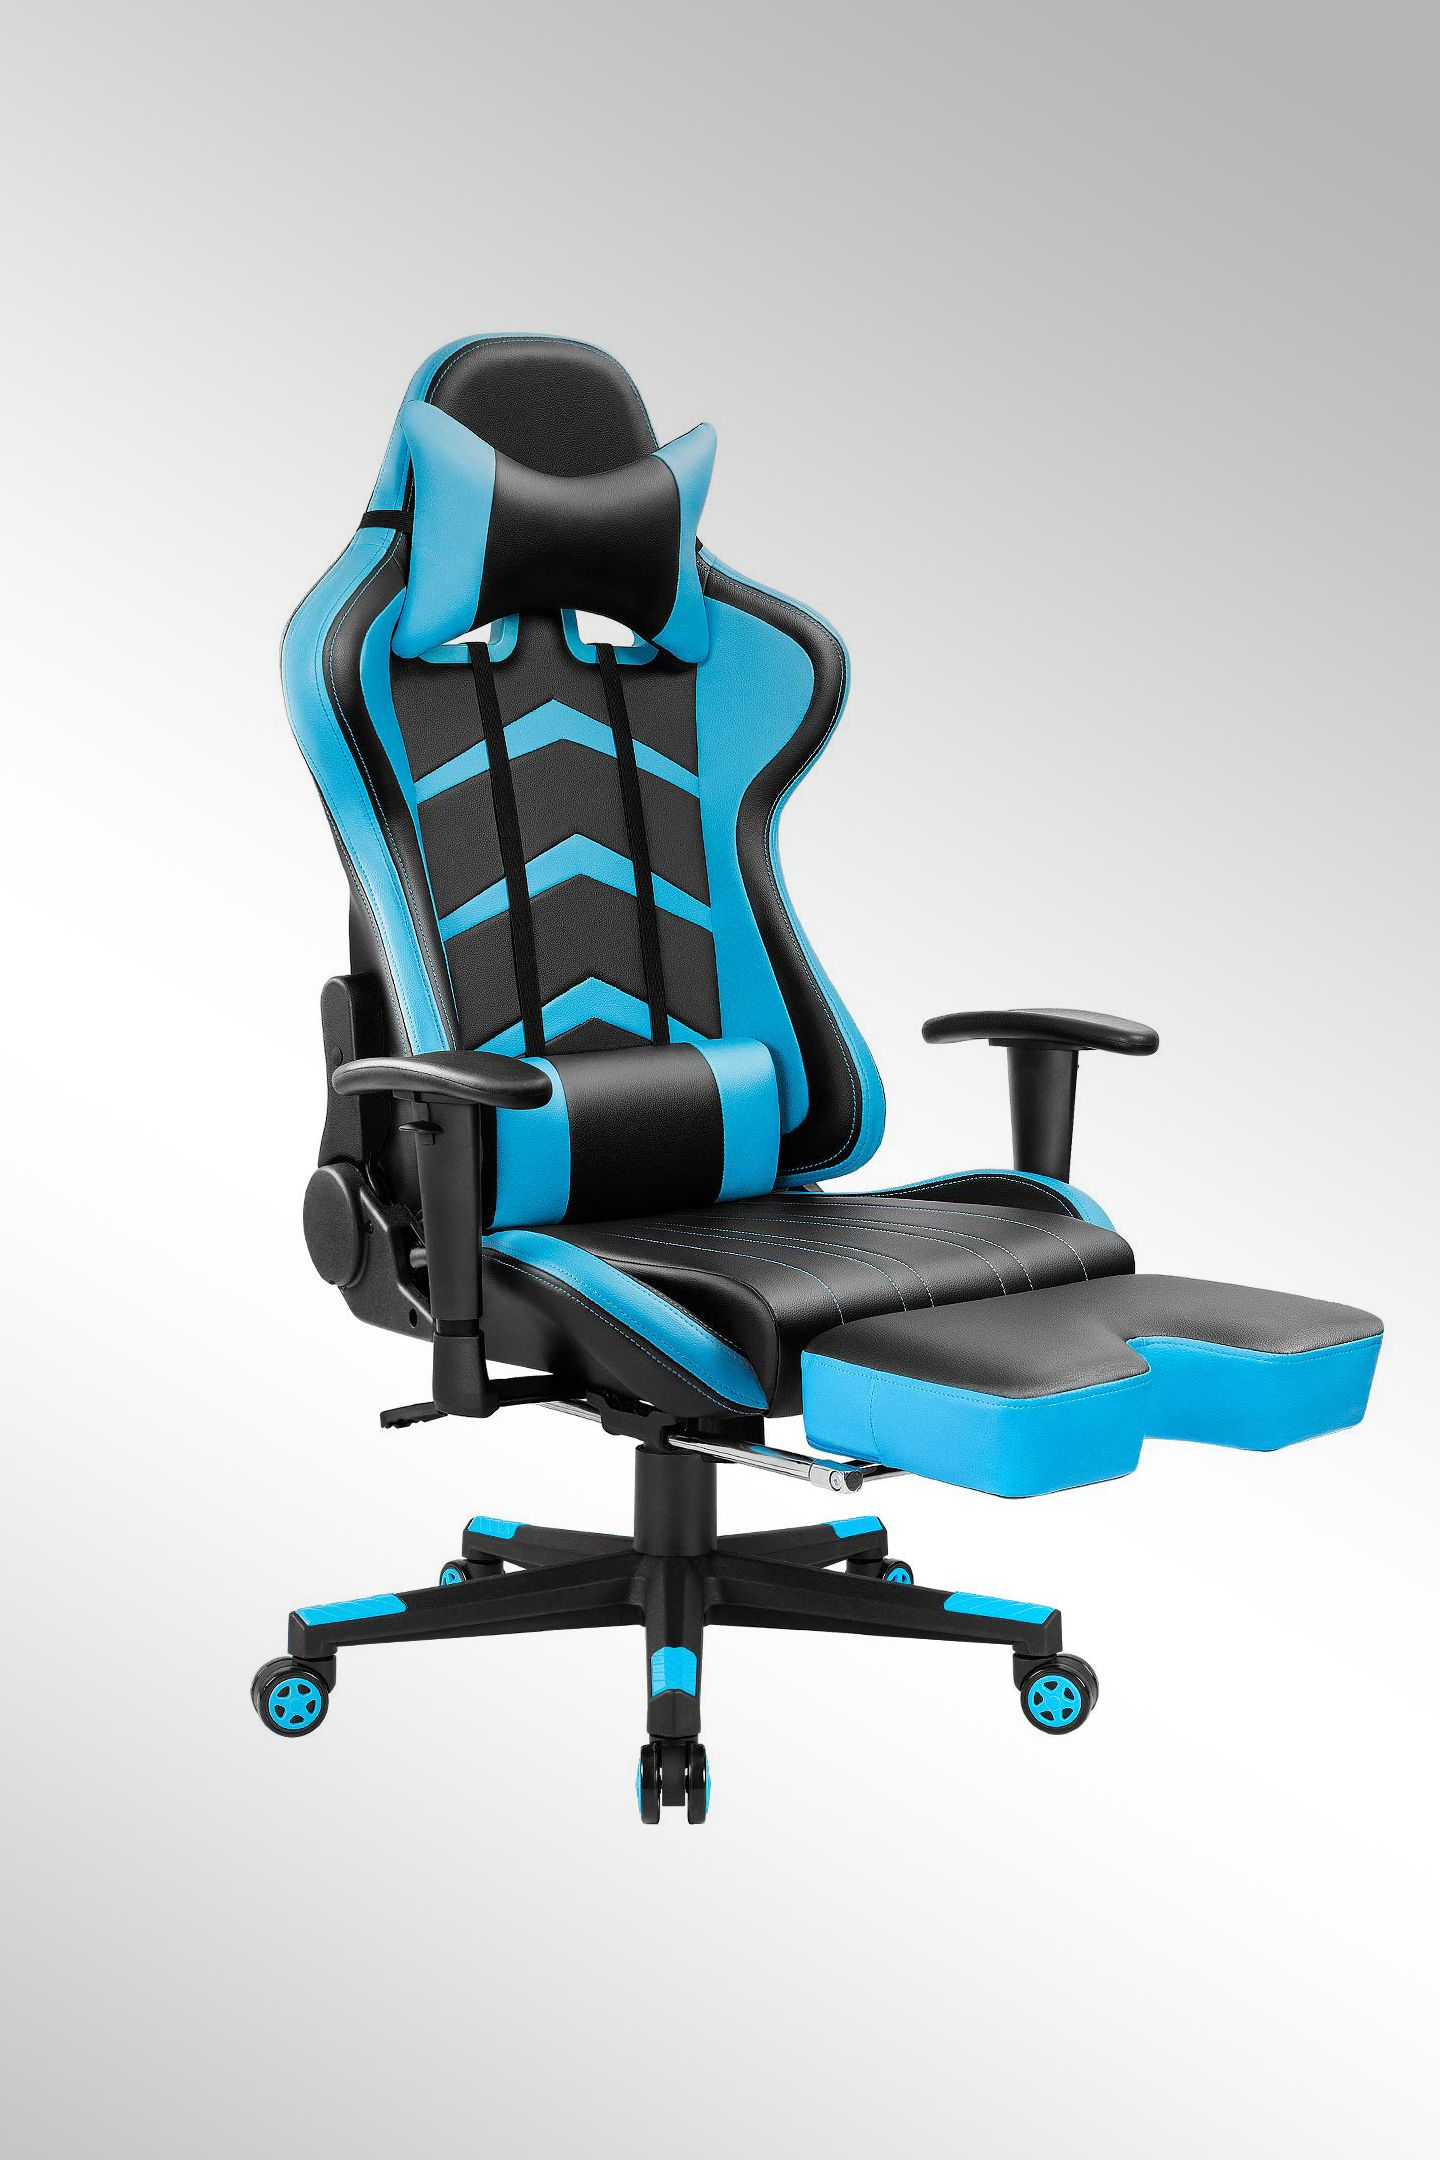 Groovy The Best Cheap Gaming Chairs Of 2019 Gaming Computer Machost Co Dining Chair Design Ideas Machostcouk